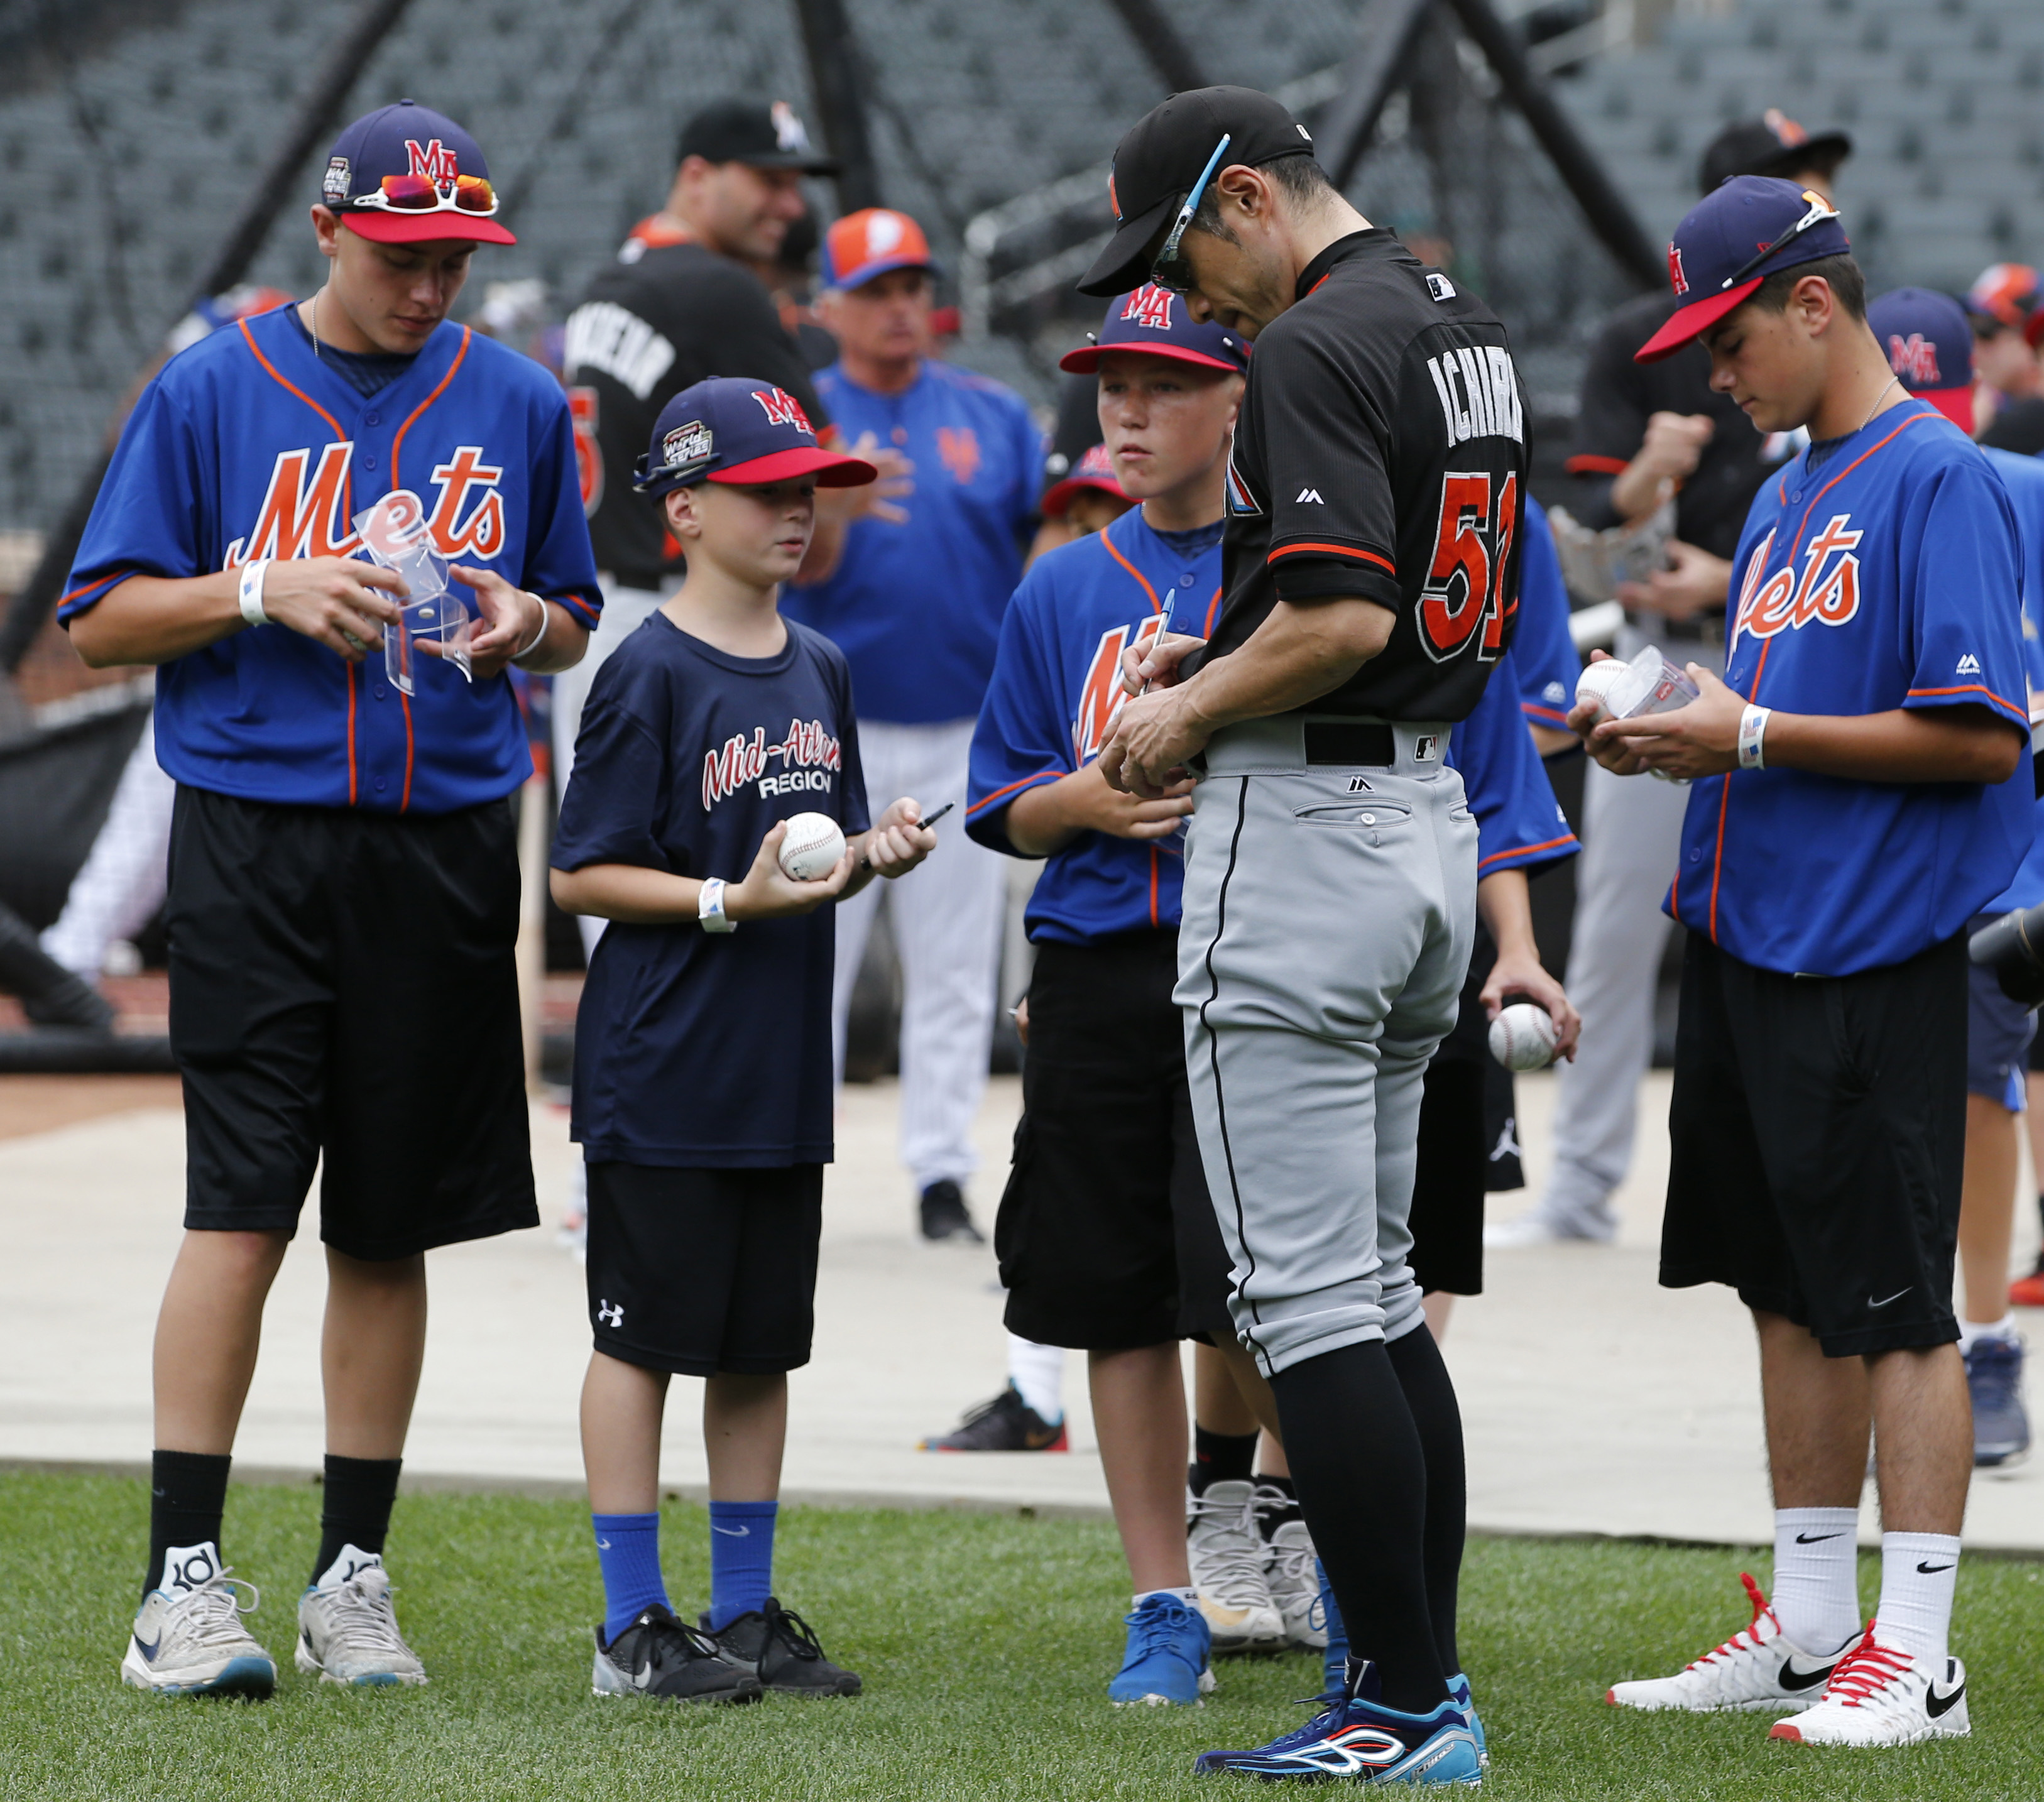 Miami Marlins' Ichiro Suzuki (51) signs autographs for members of the Little League World Series winning team from Endwell, N.Y., during batting practice before a baseball game between the New York Mets and the Marlins, Wednesday, Aug. 31, 2016, in New Yo